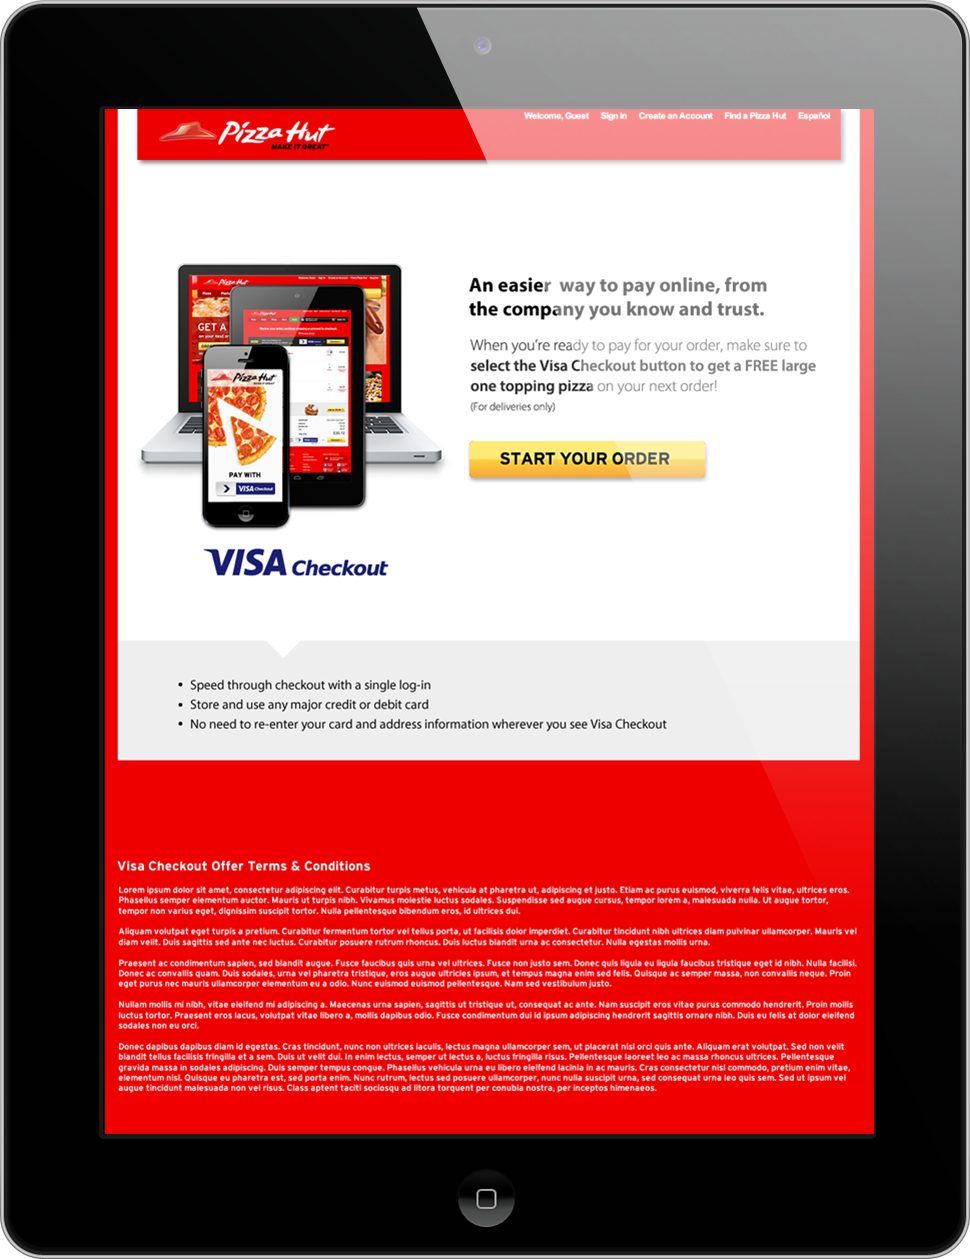 visa-checkout_pizzahut-tablet